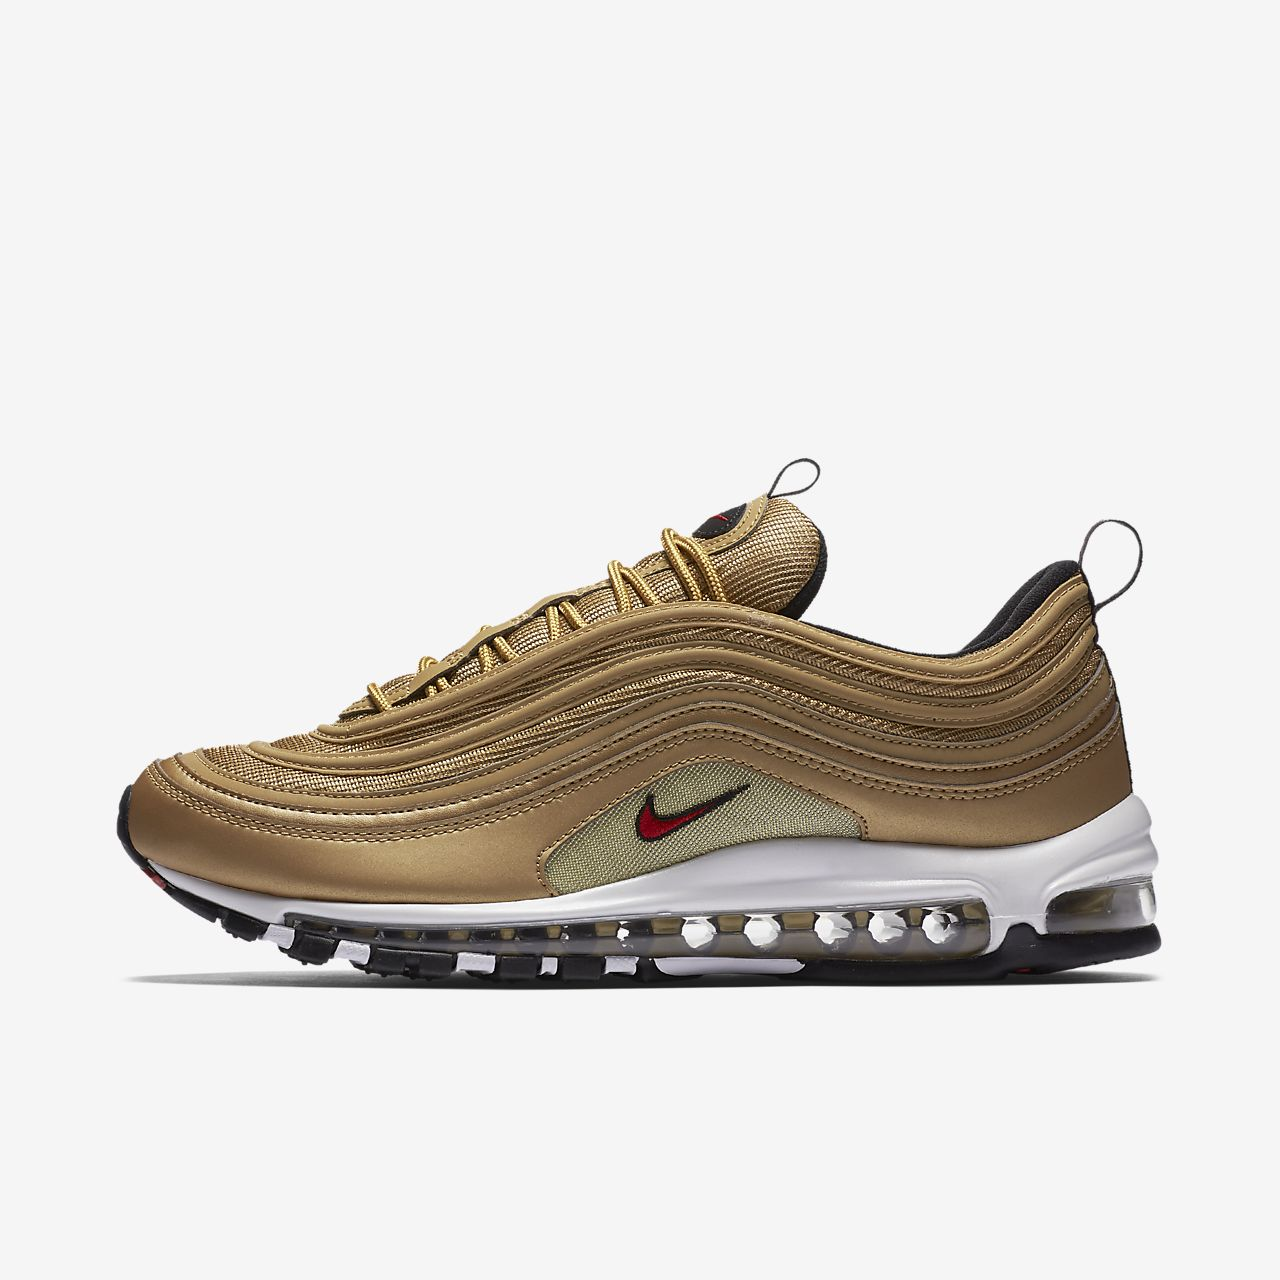 ... Chaussure Nike Air Max 97 OG QS pour Homme